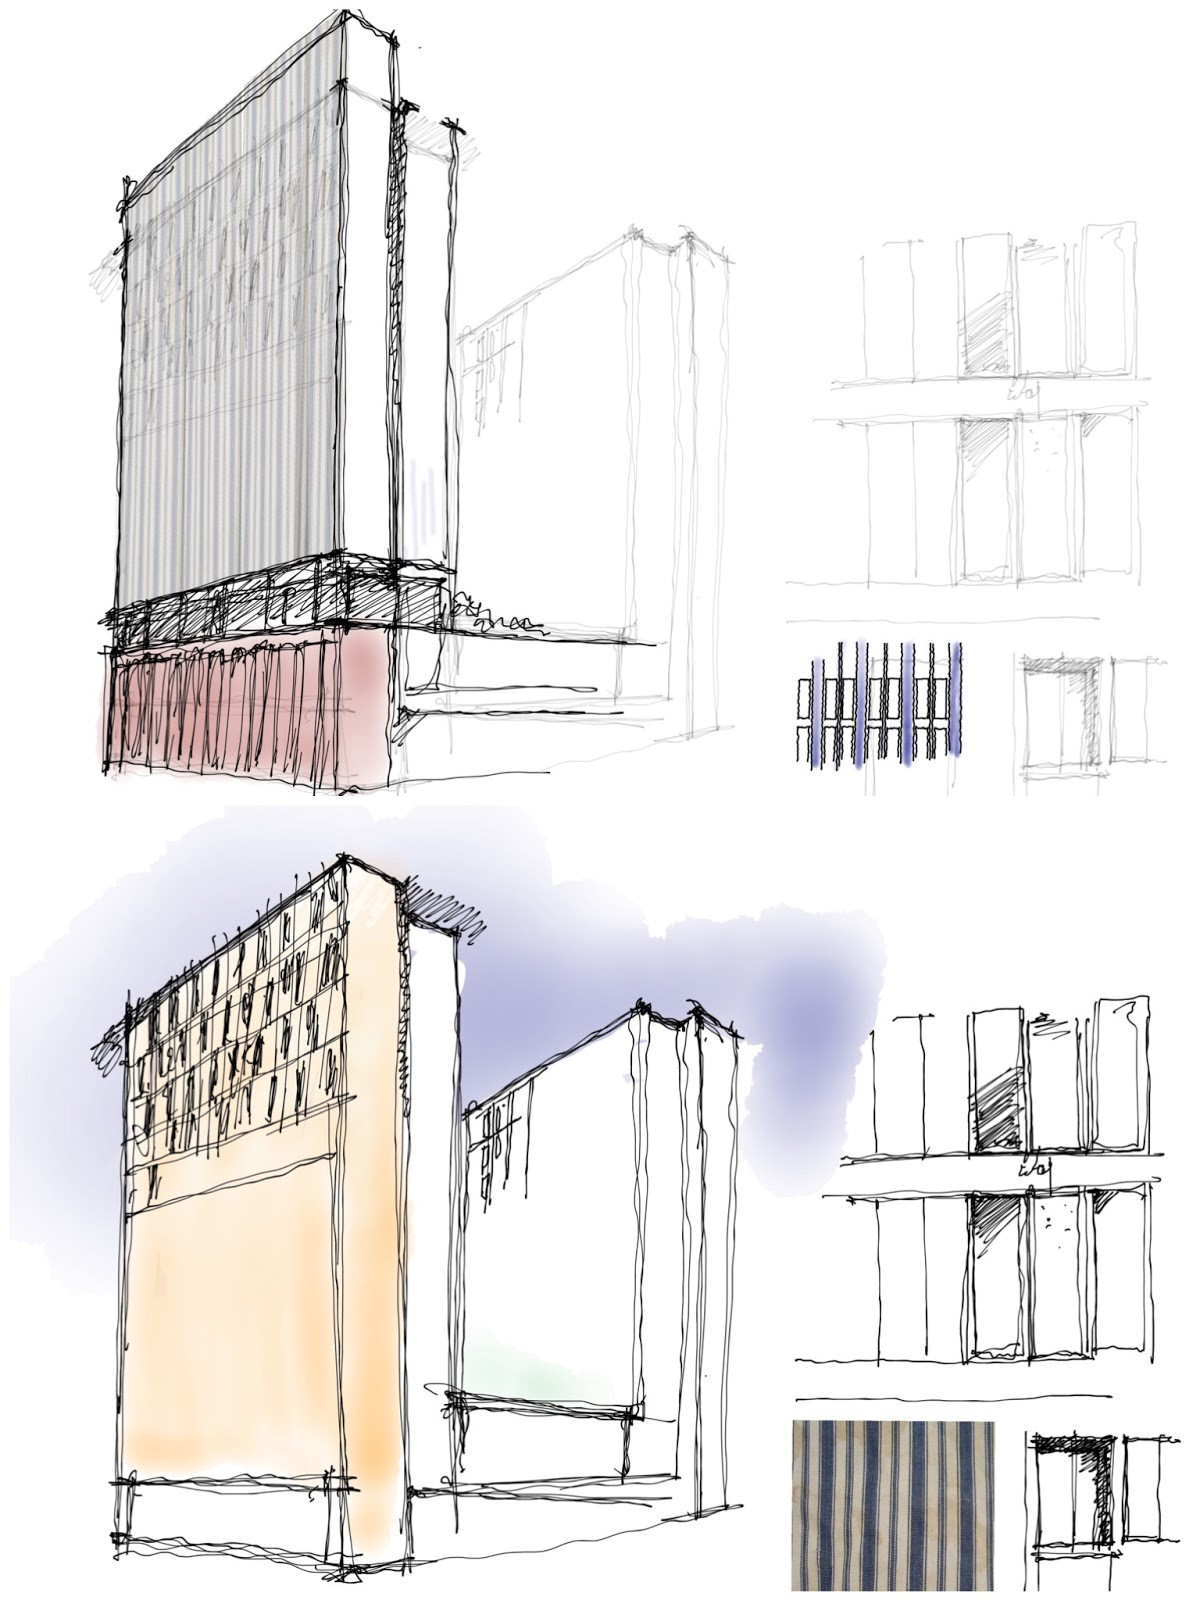 Some Development Sketches For Two 23 Storey Residential Towers In Salford